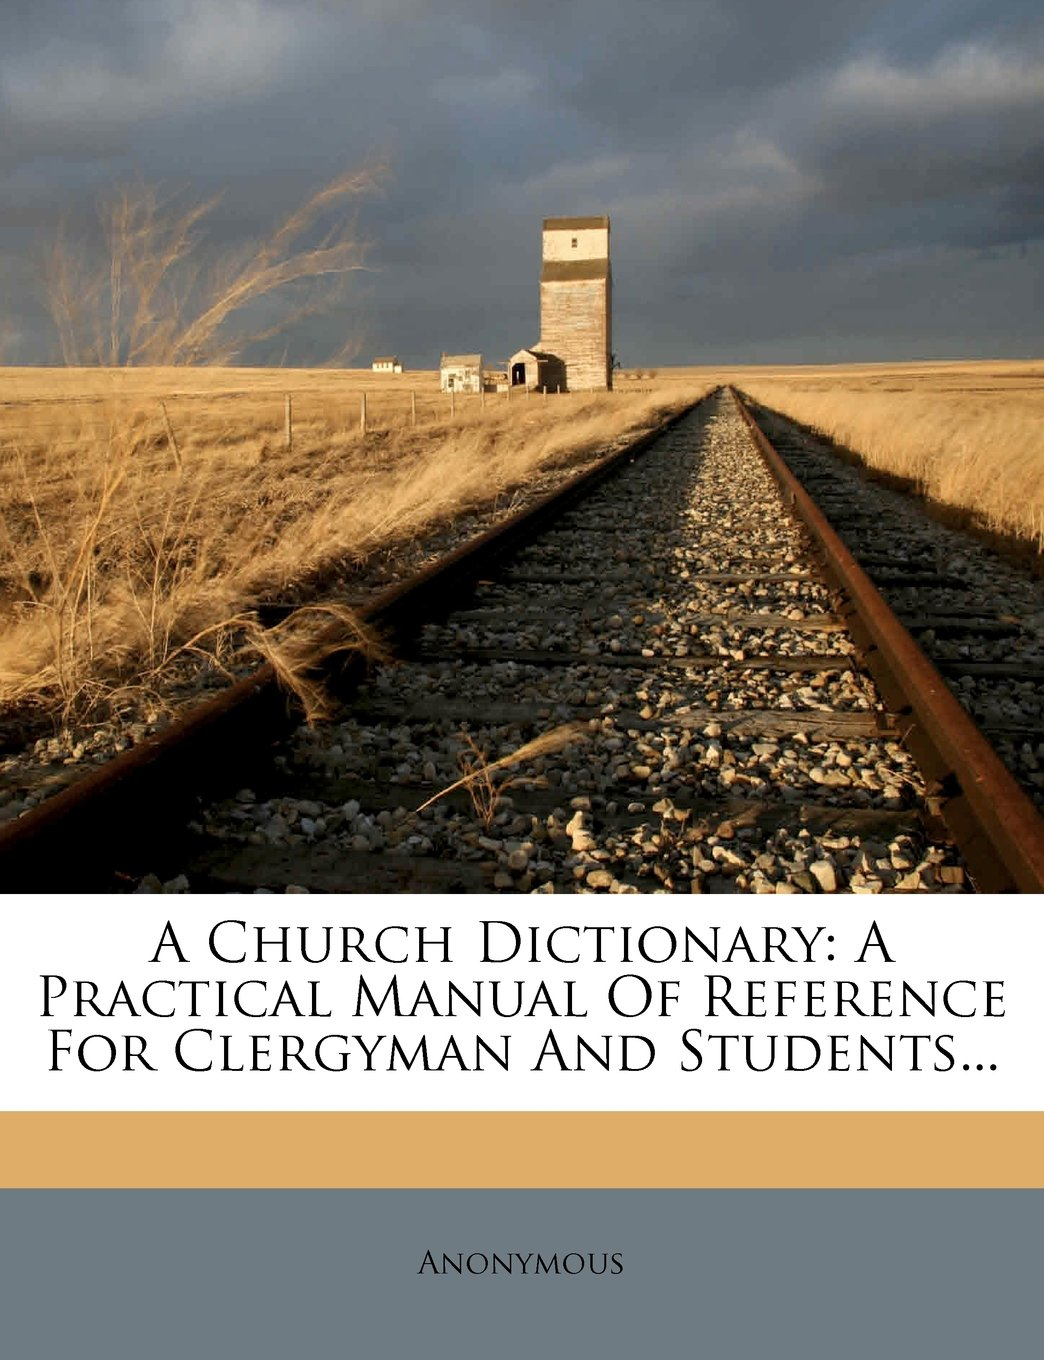 Download A Church Dictionary: A Practical Manual Of Reference For Clergyman And Students... pdf